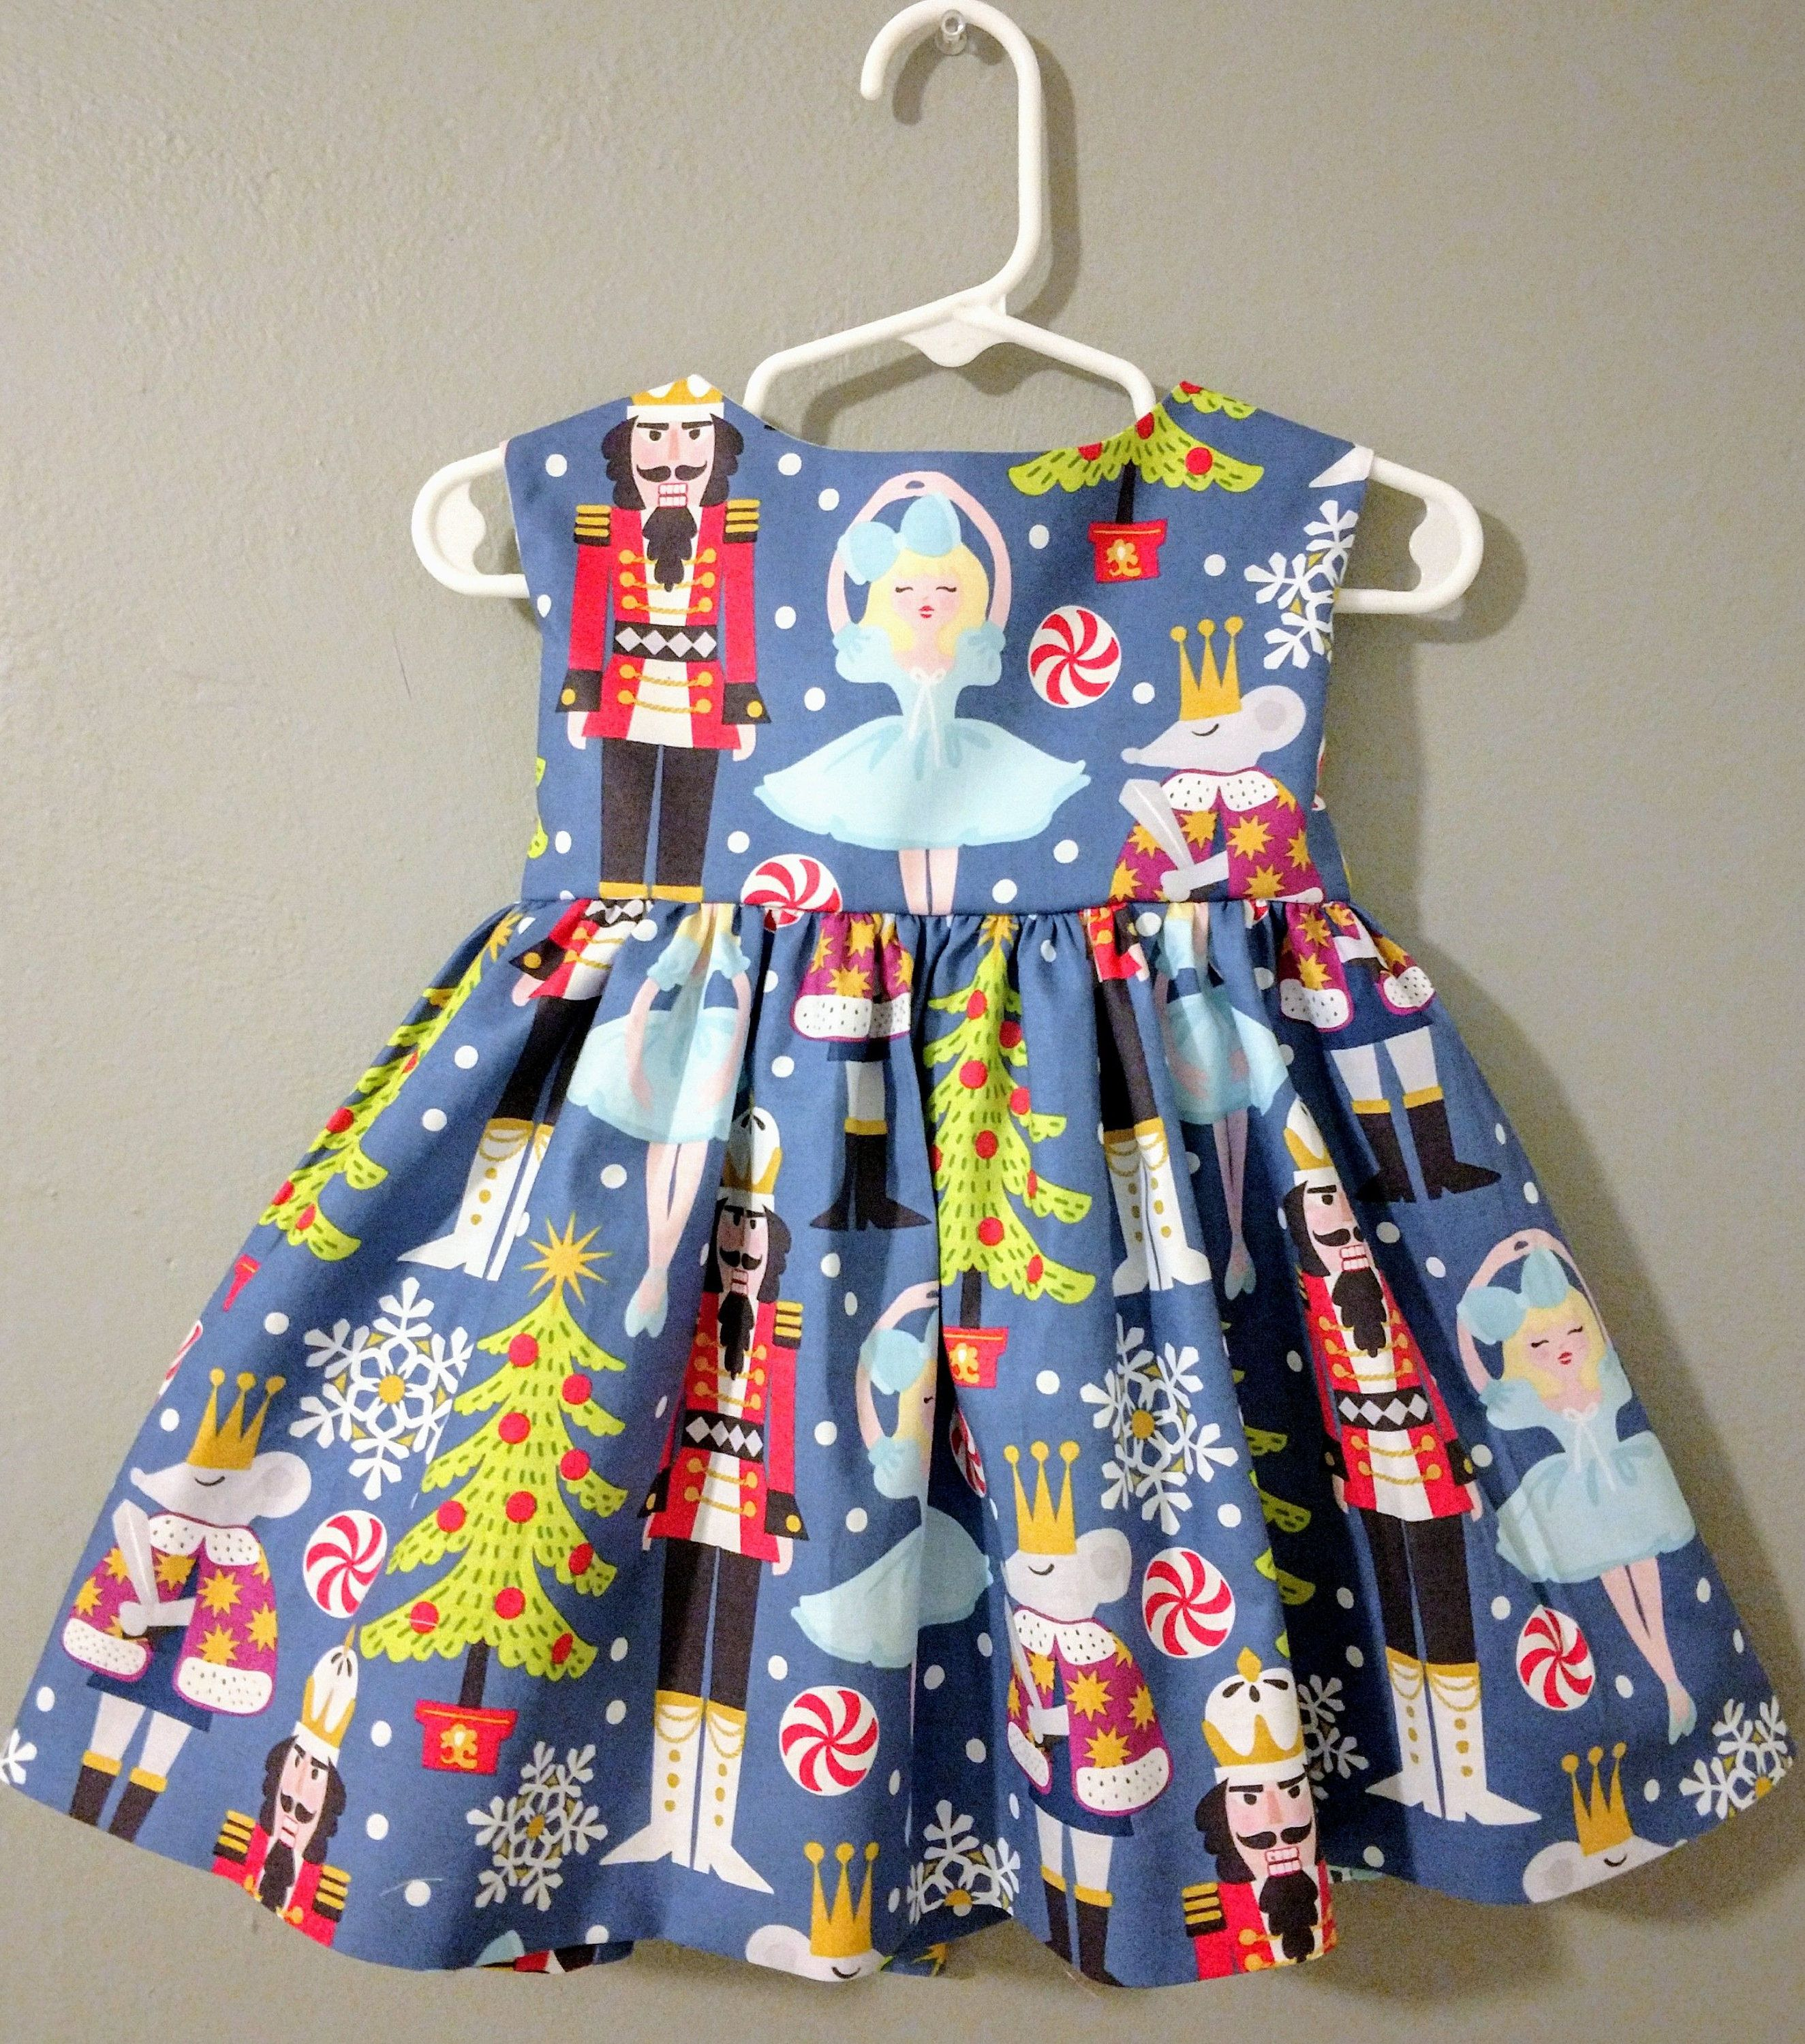 54a2cc2edde2 Nutcracker dress, Nutcracker ballet dress, girls Christmas dress, baby Christmas  dress, 1st Christmas dress, Christmas dress for girls, ...